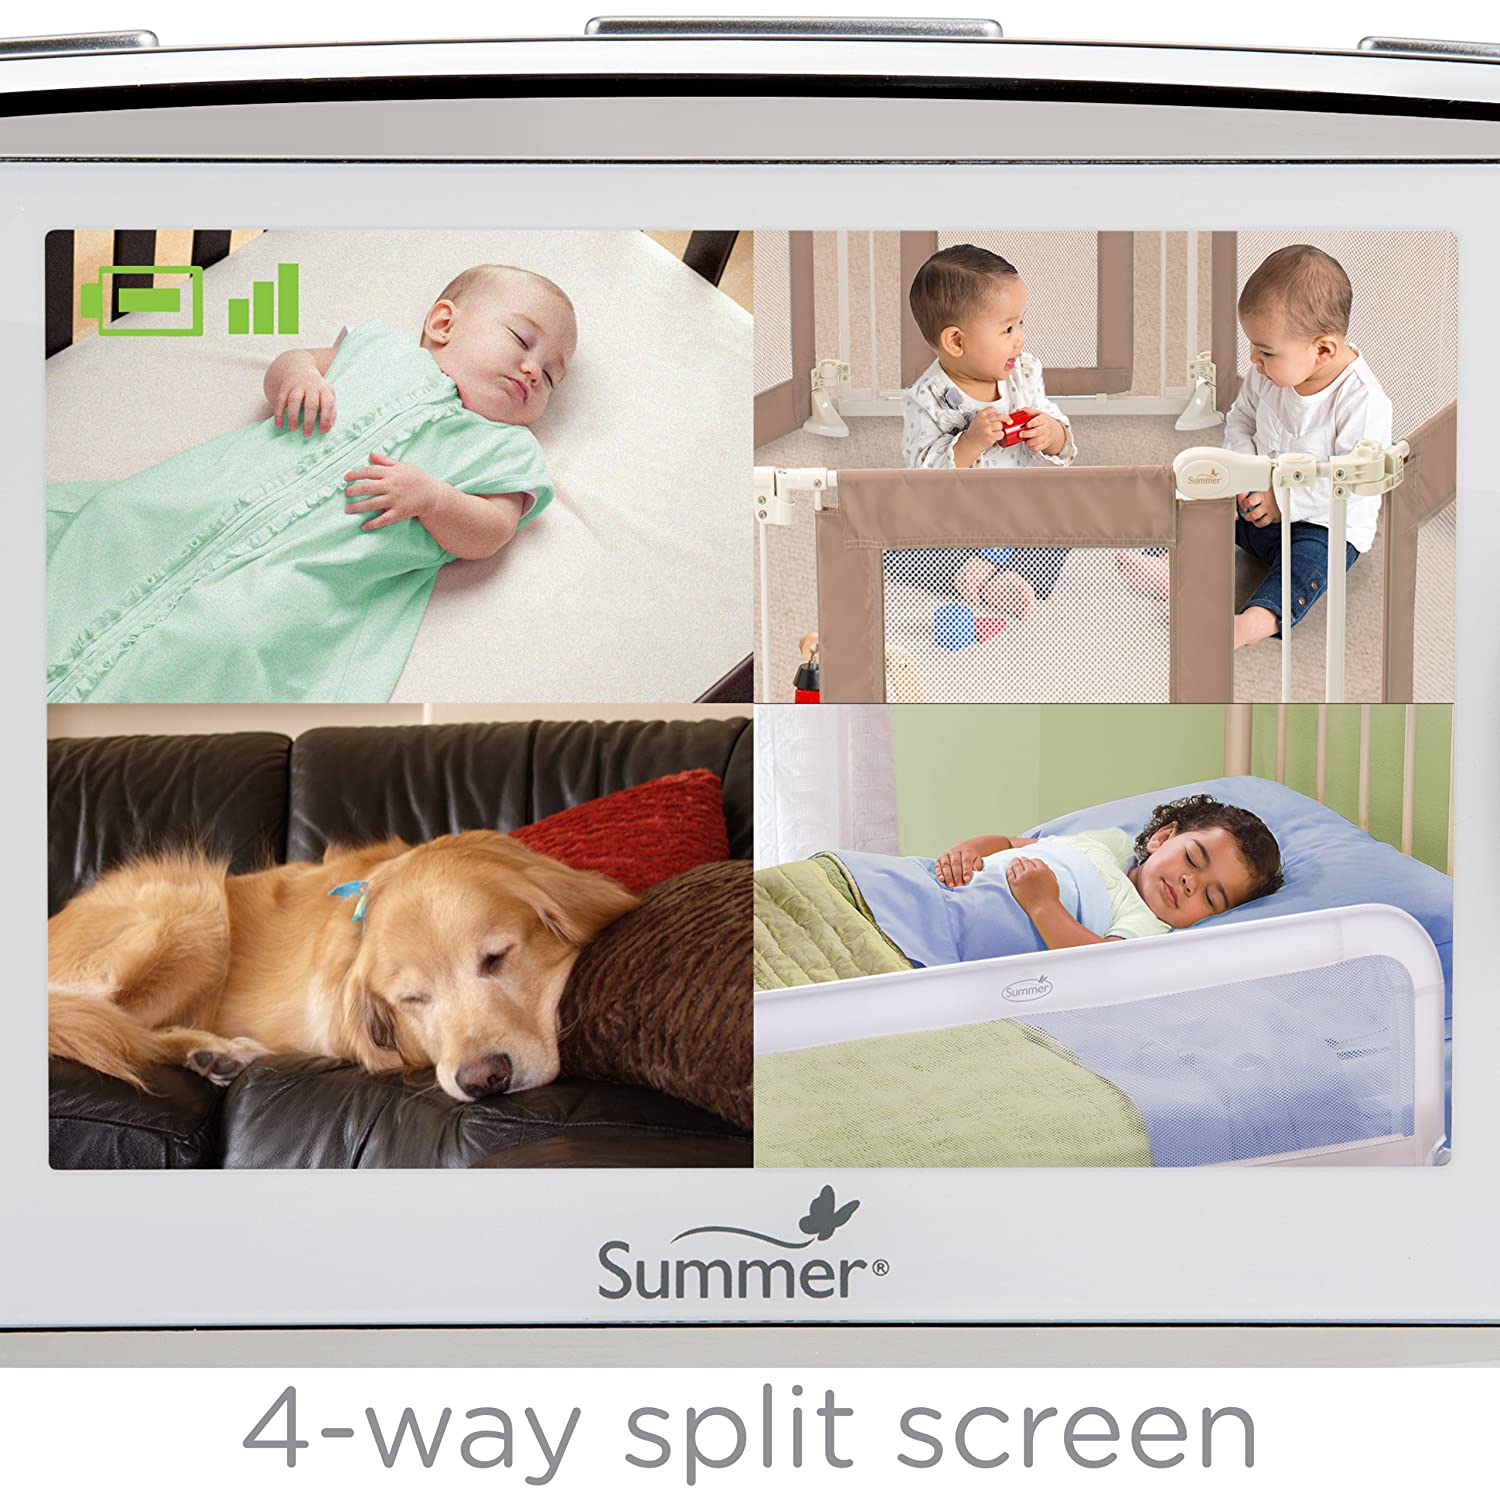 Video Monitor Cord for Summer Infant Dual View digital Color Video Monitor Set